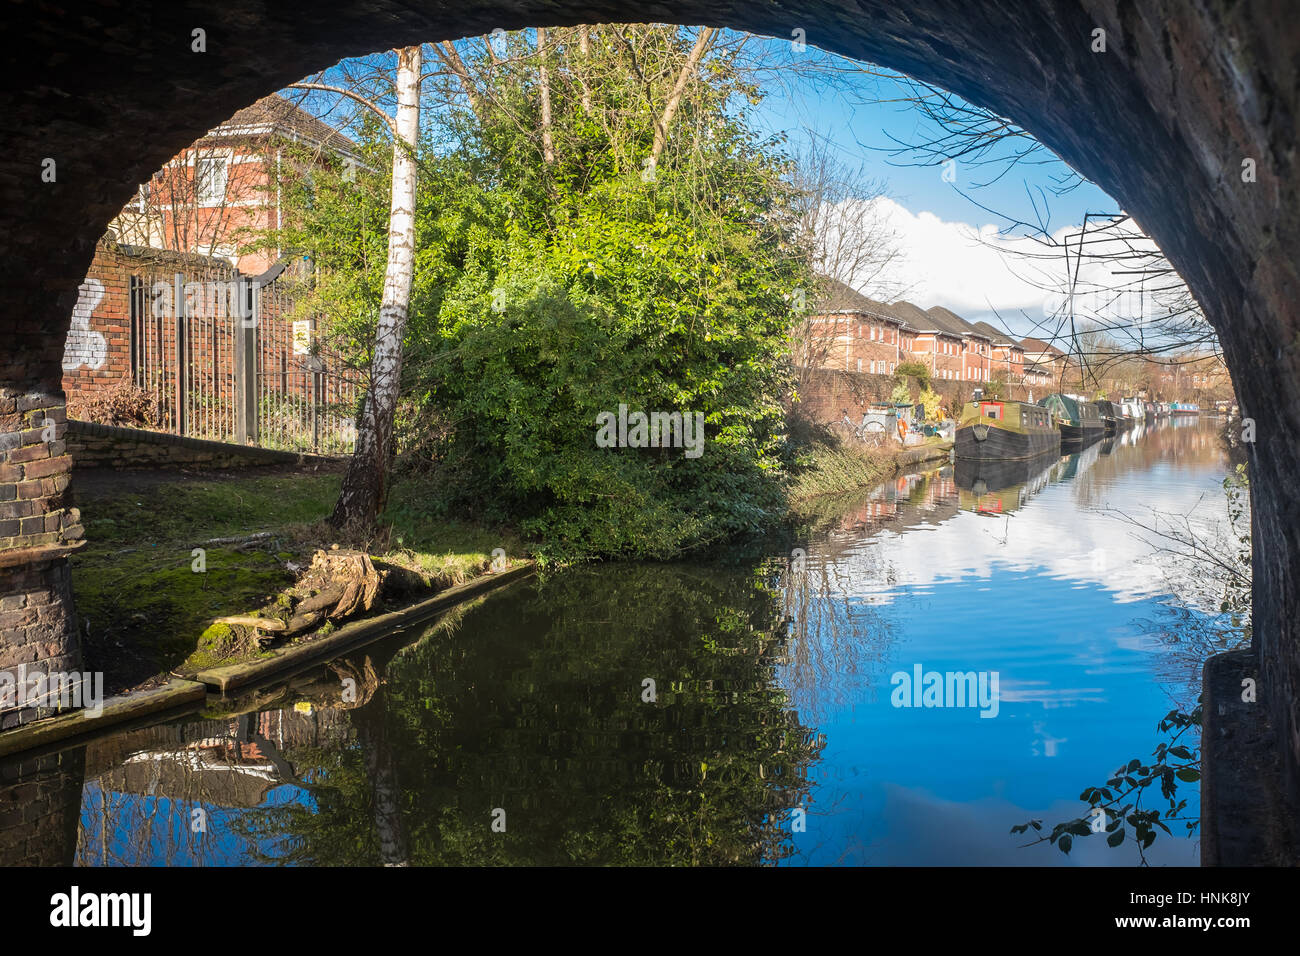 Beautiful View of Birmingham Canal with Canal Boats Seen - Stock Image